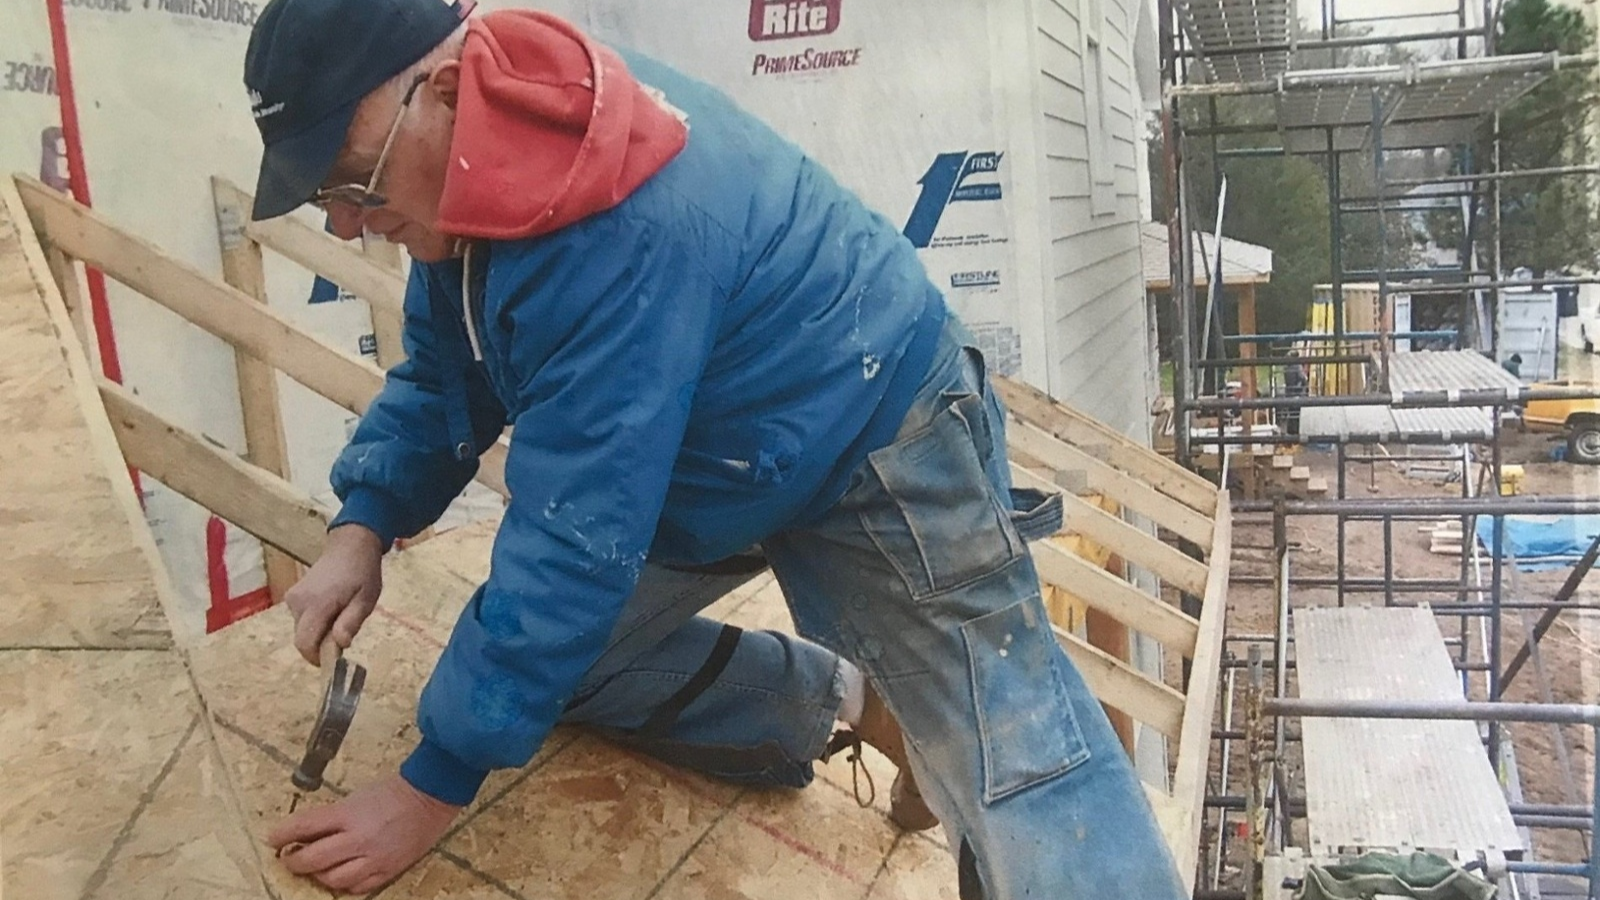 Ken Tate Regular Volunteer at Habitat for Humanity